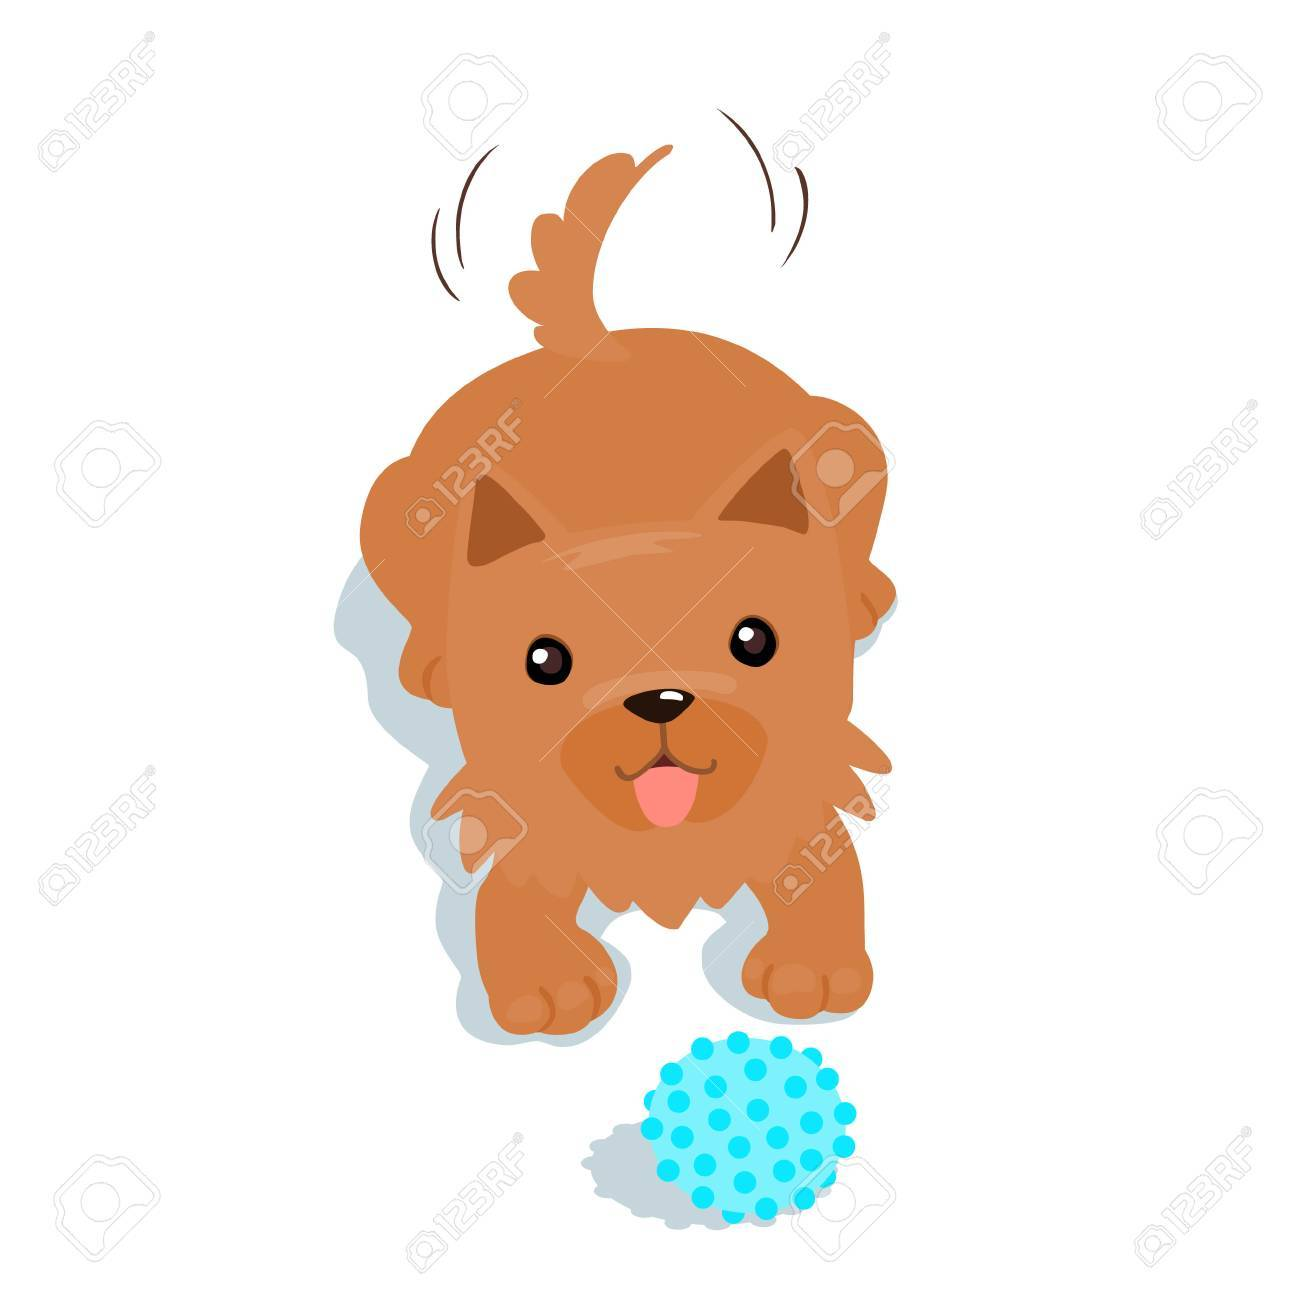 Happy Yorkshire Terrier Dog Want To Play A Ball Illustration Royalty